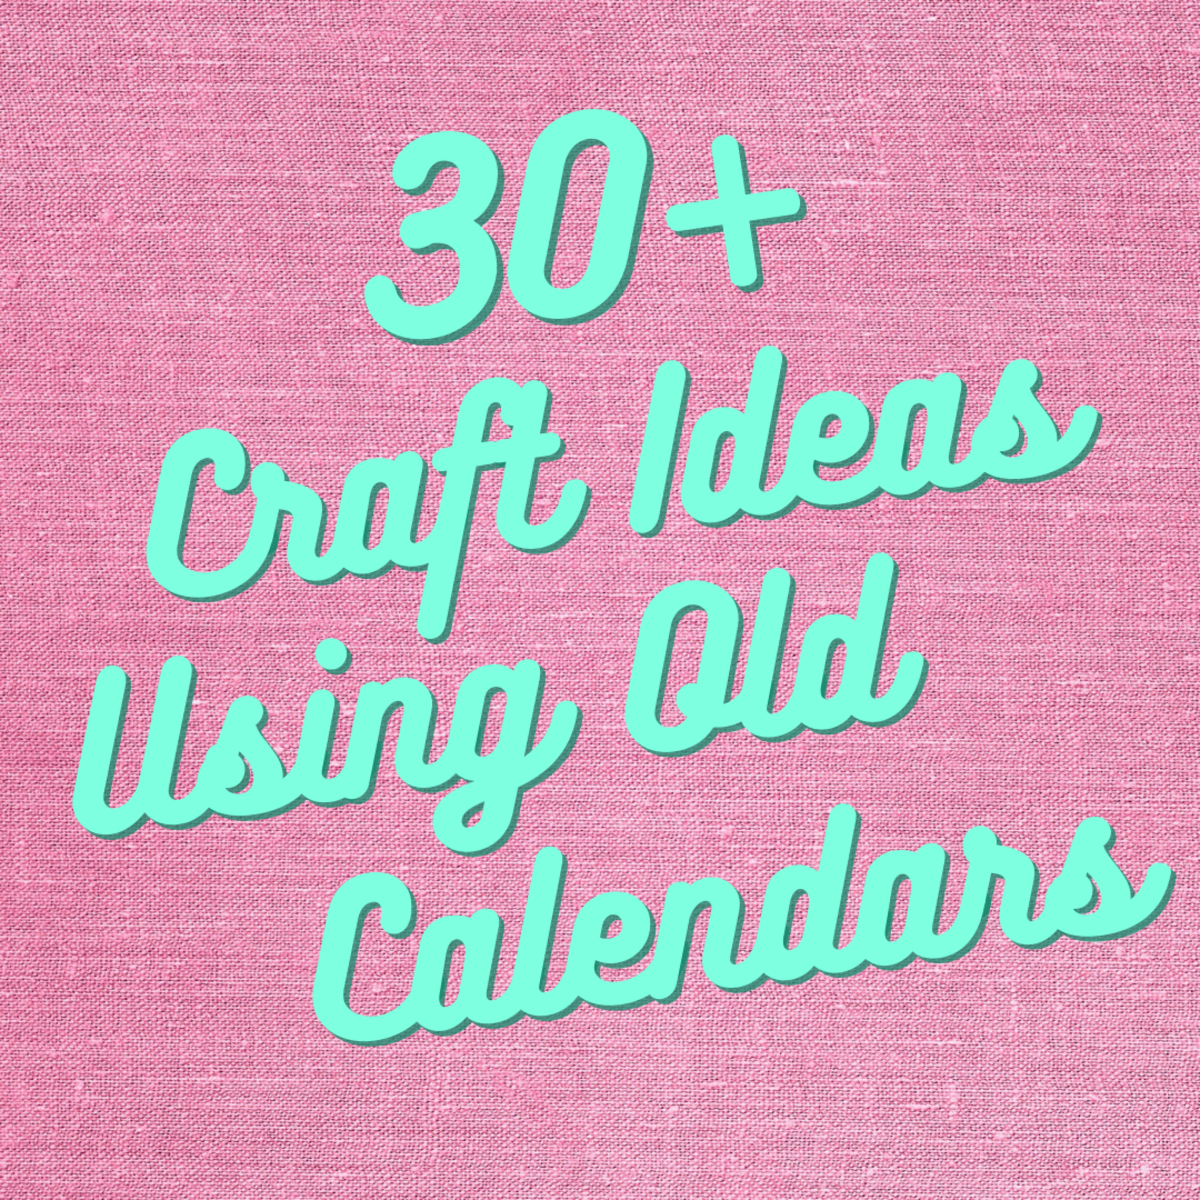 This article offers over 30 crafting ideas to turn old calendar pages into awesome gifts, ornaments, and more!